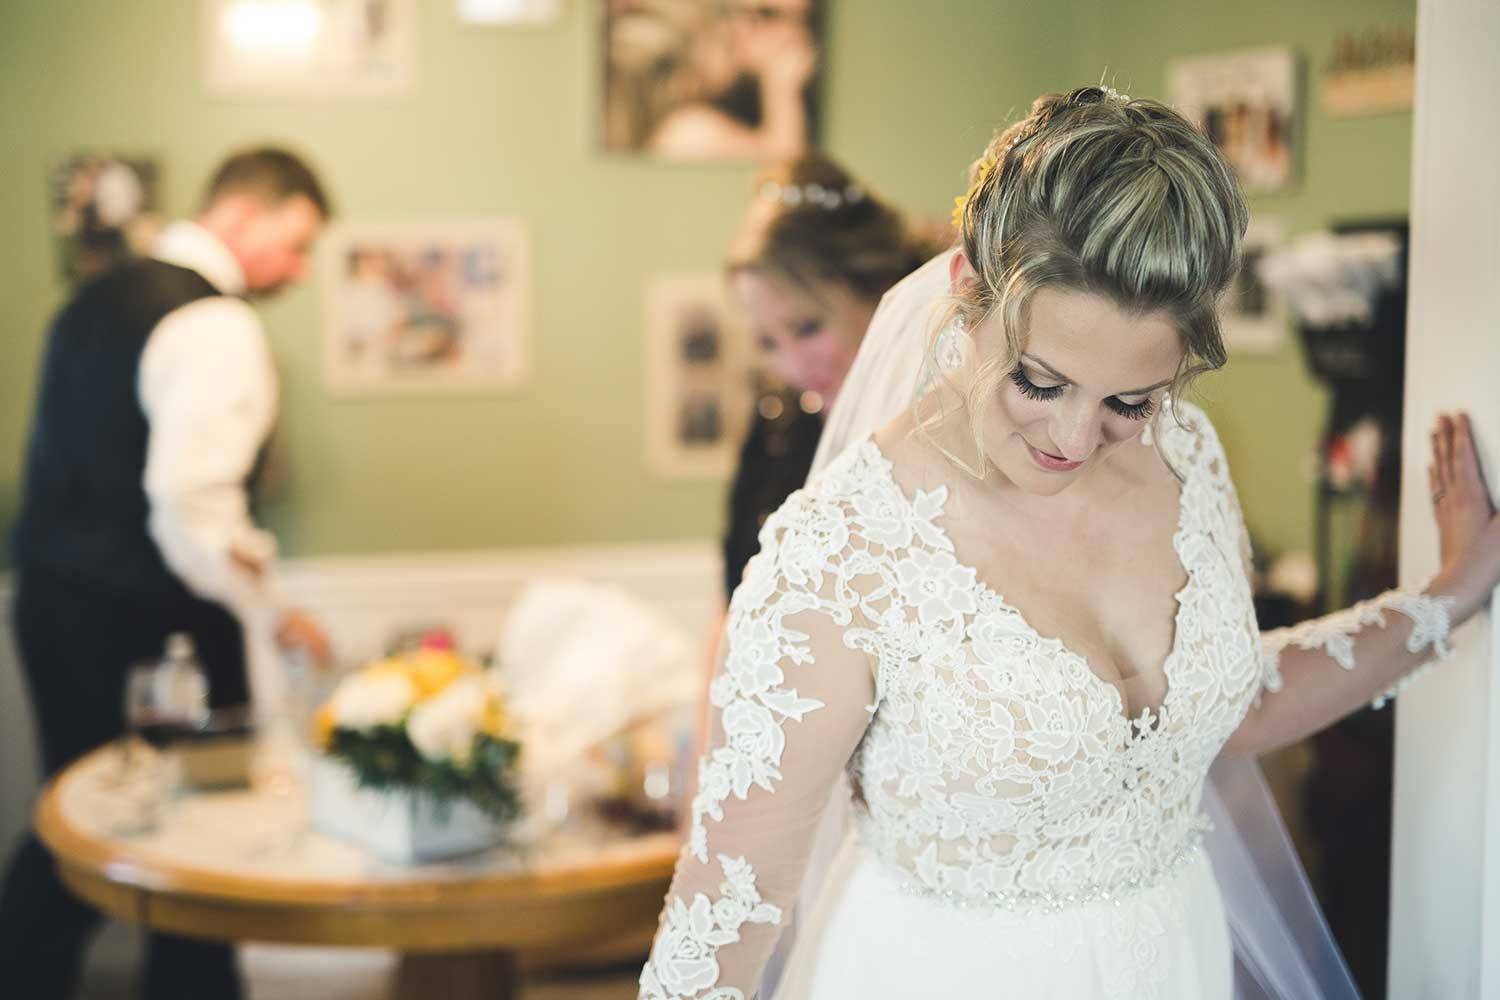 Bride admiring her dress